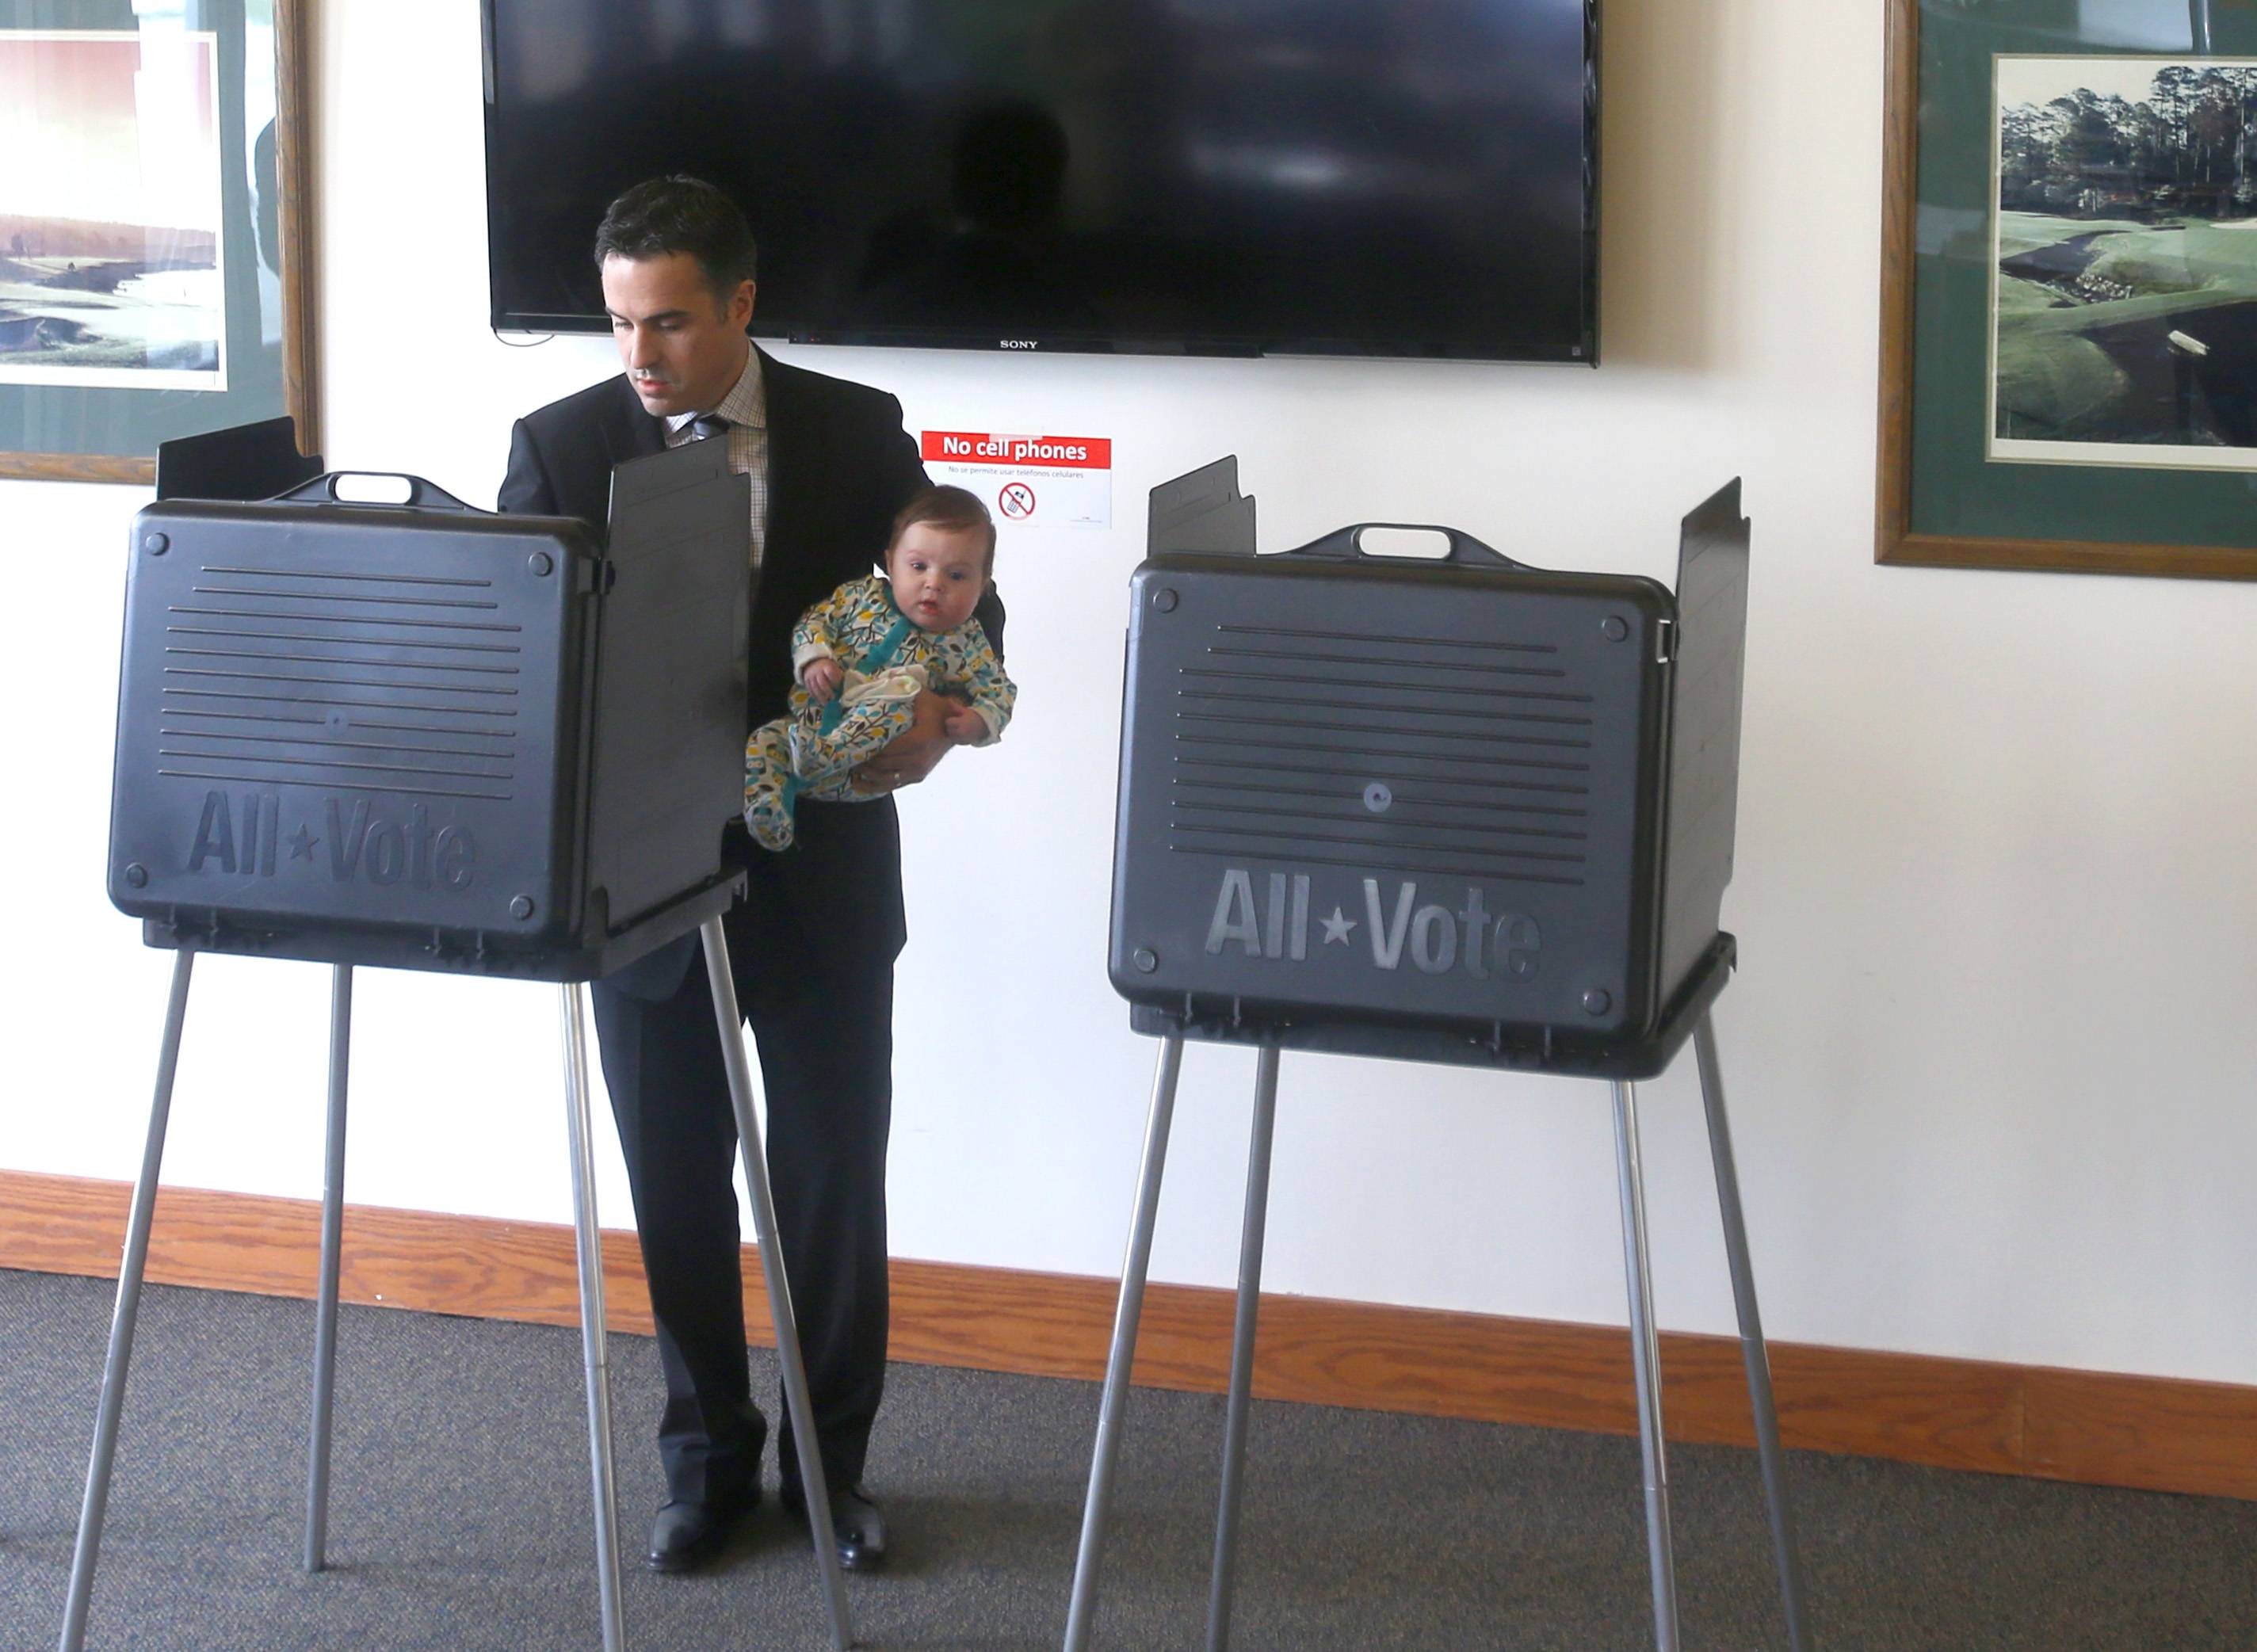 Joe Cantore, shown voting Tuesday at the Oak Brook Golf Club while holding son Joe, became the Republican nominee for president of the DuPage County Forest Preserve District by defeating Mary Lou Wehli in the GOP primary.